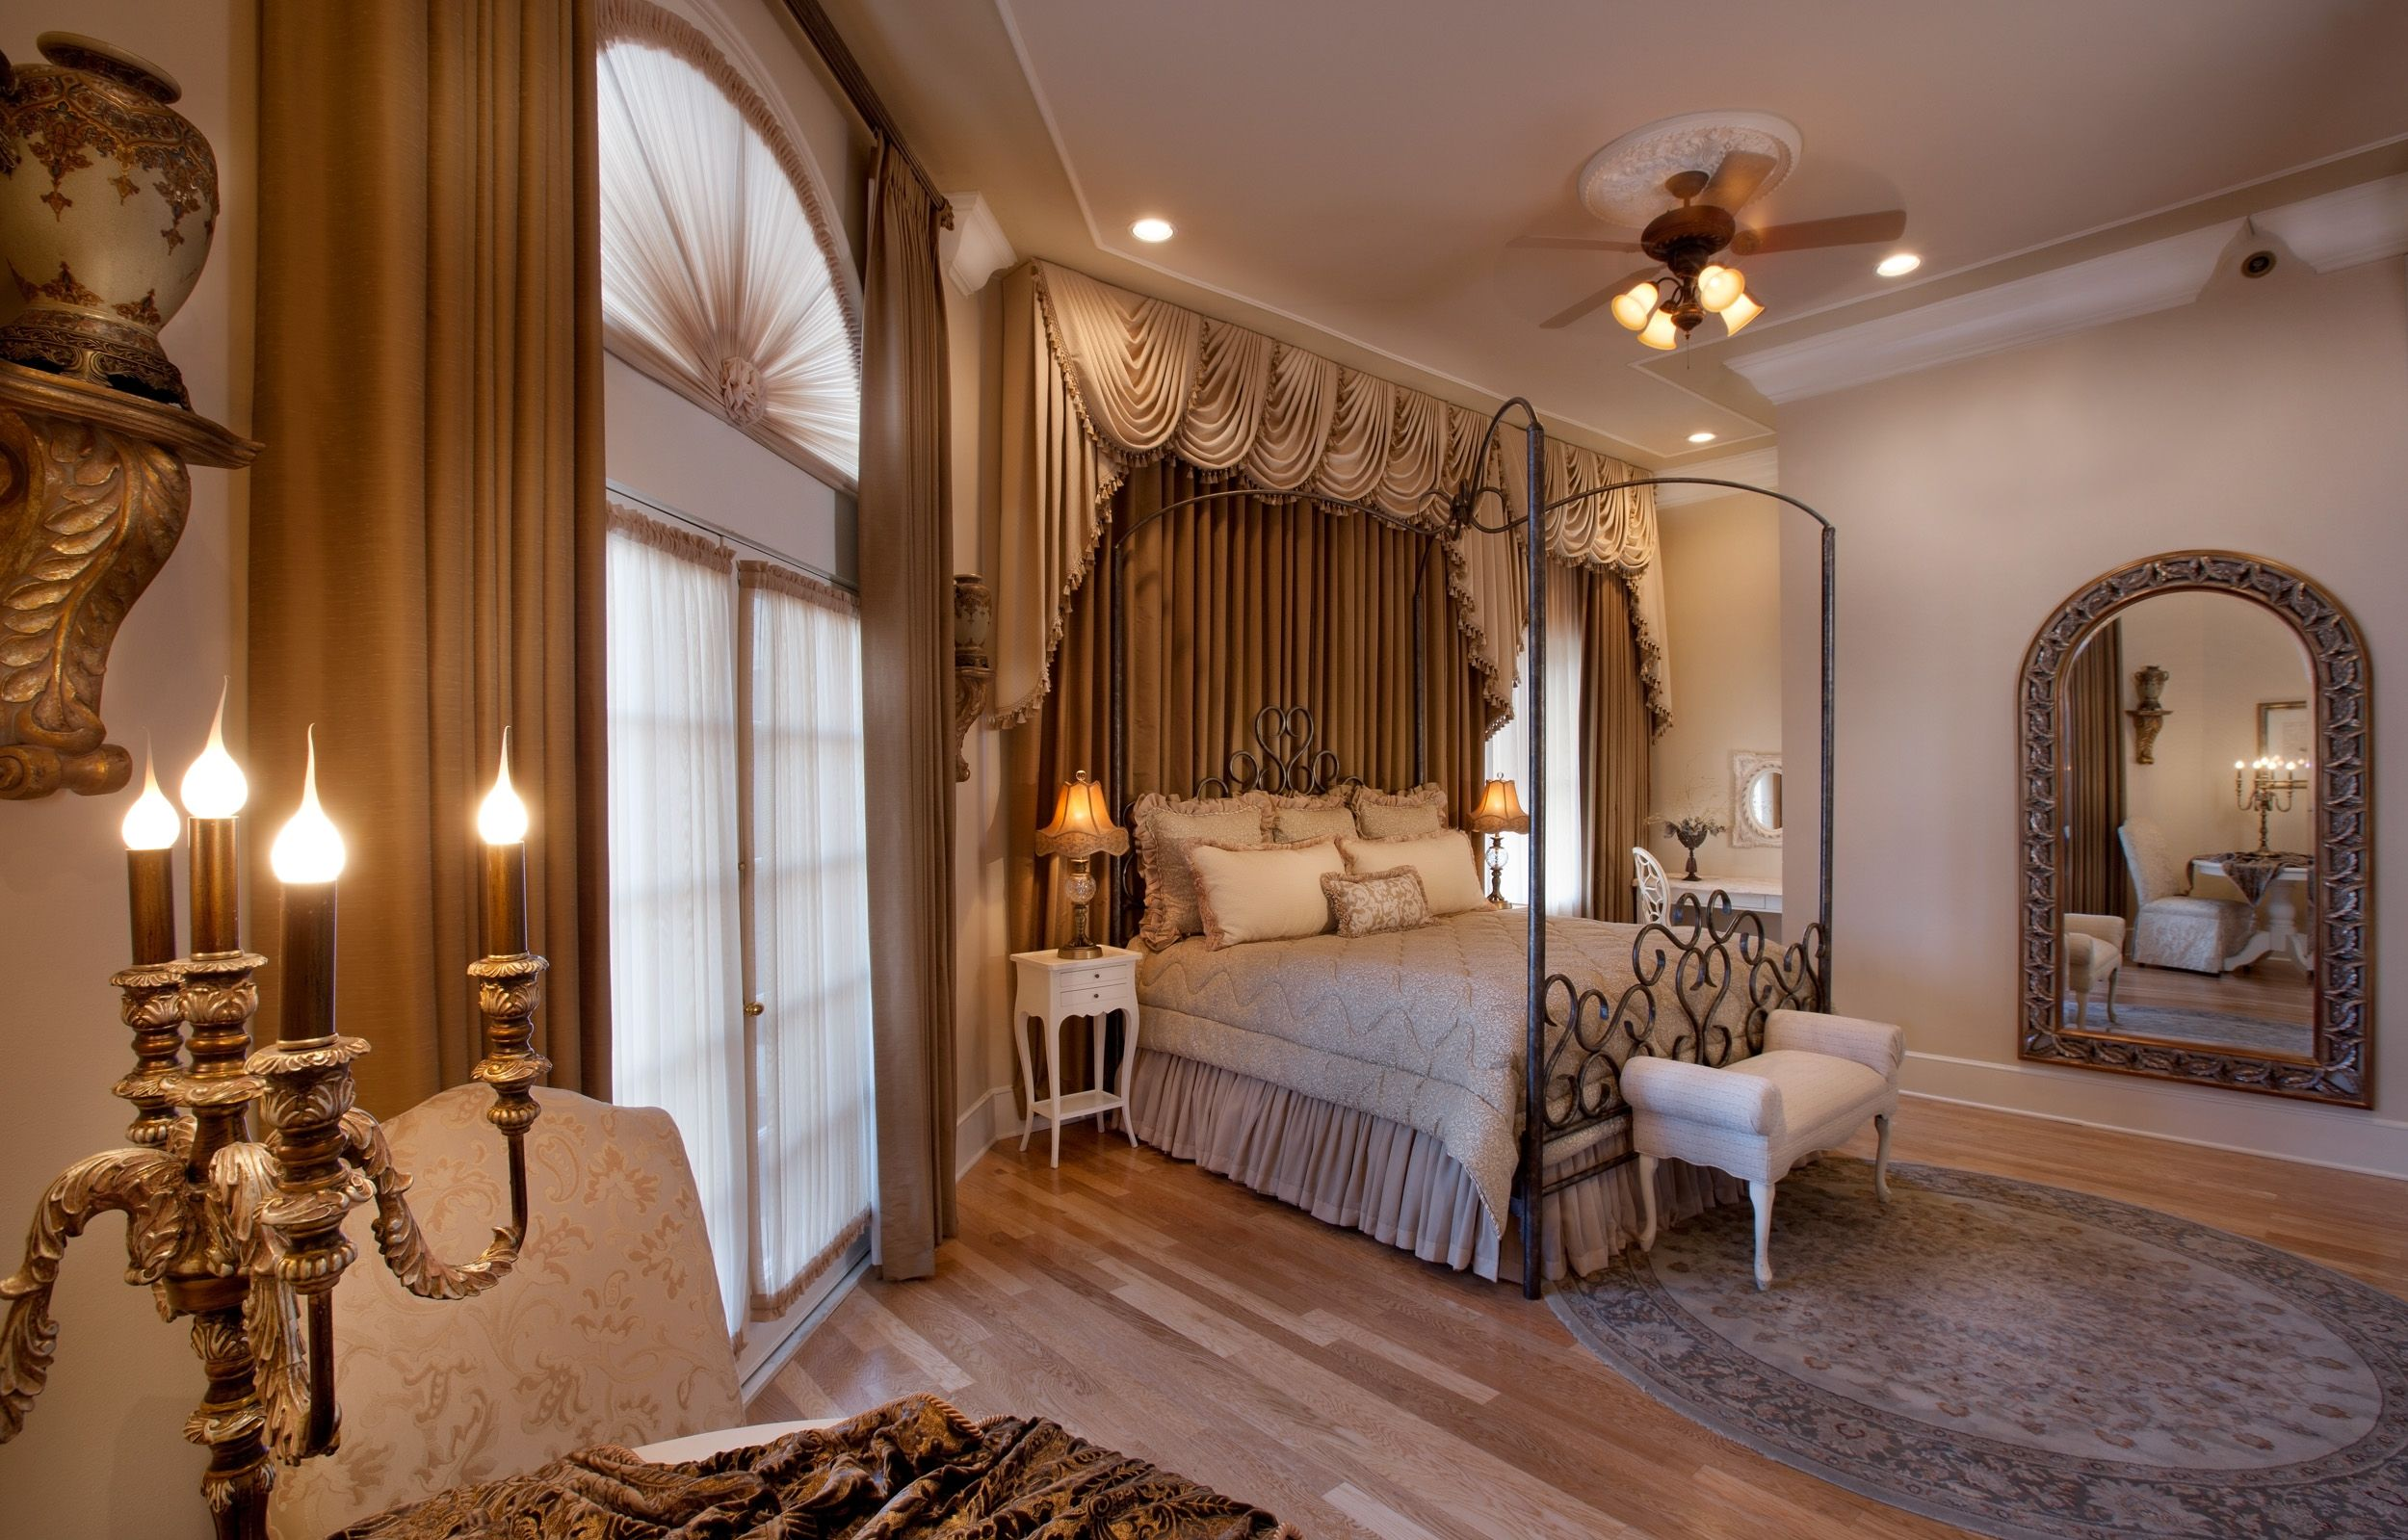 Renaissance Bridal Suite At The Driskill Hotel Romance Travel